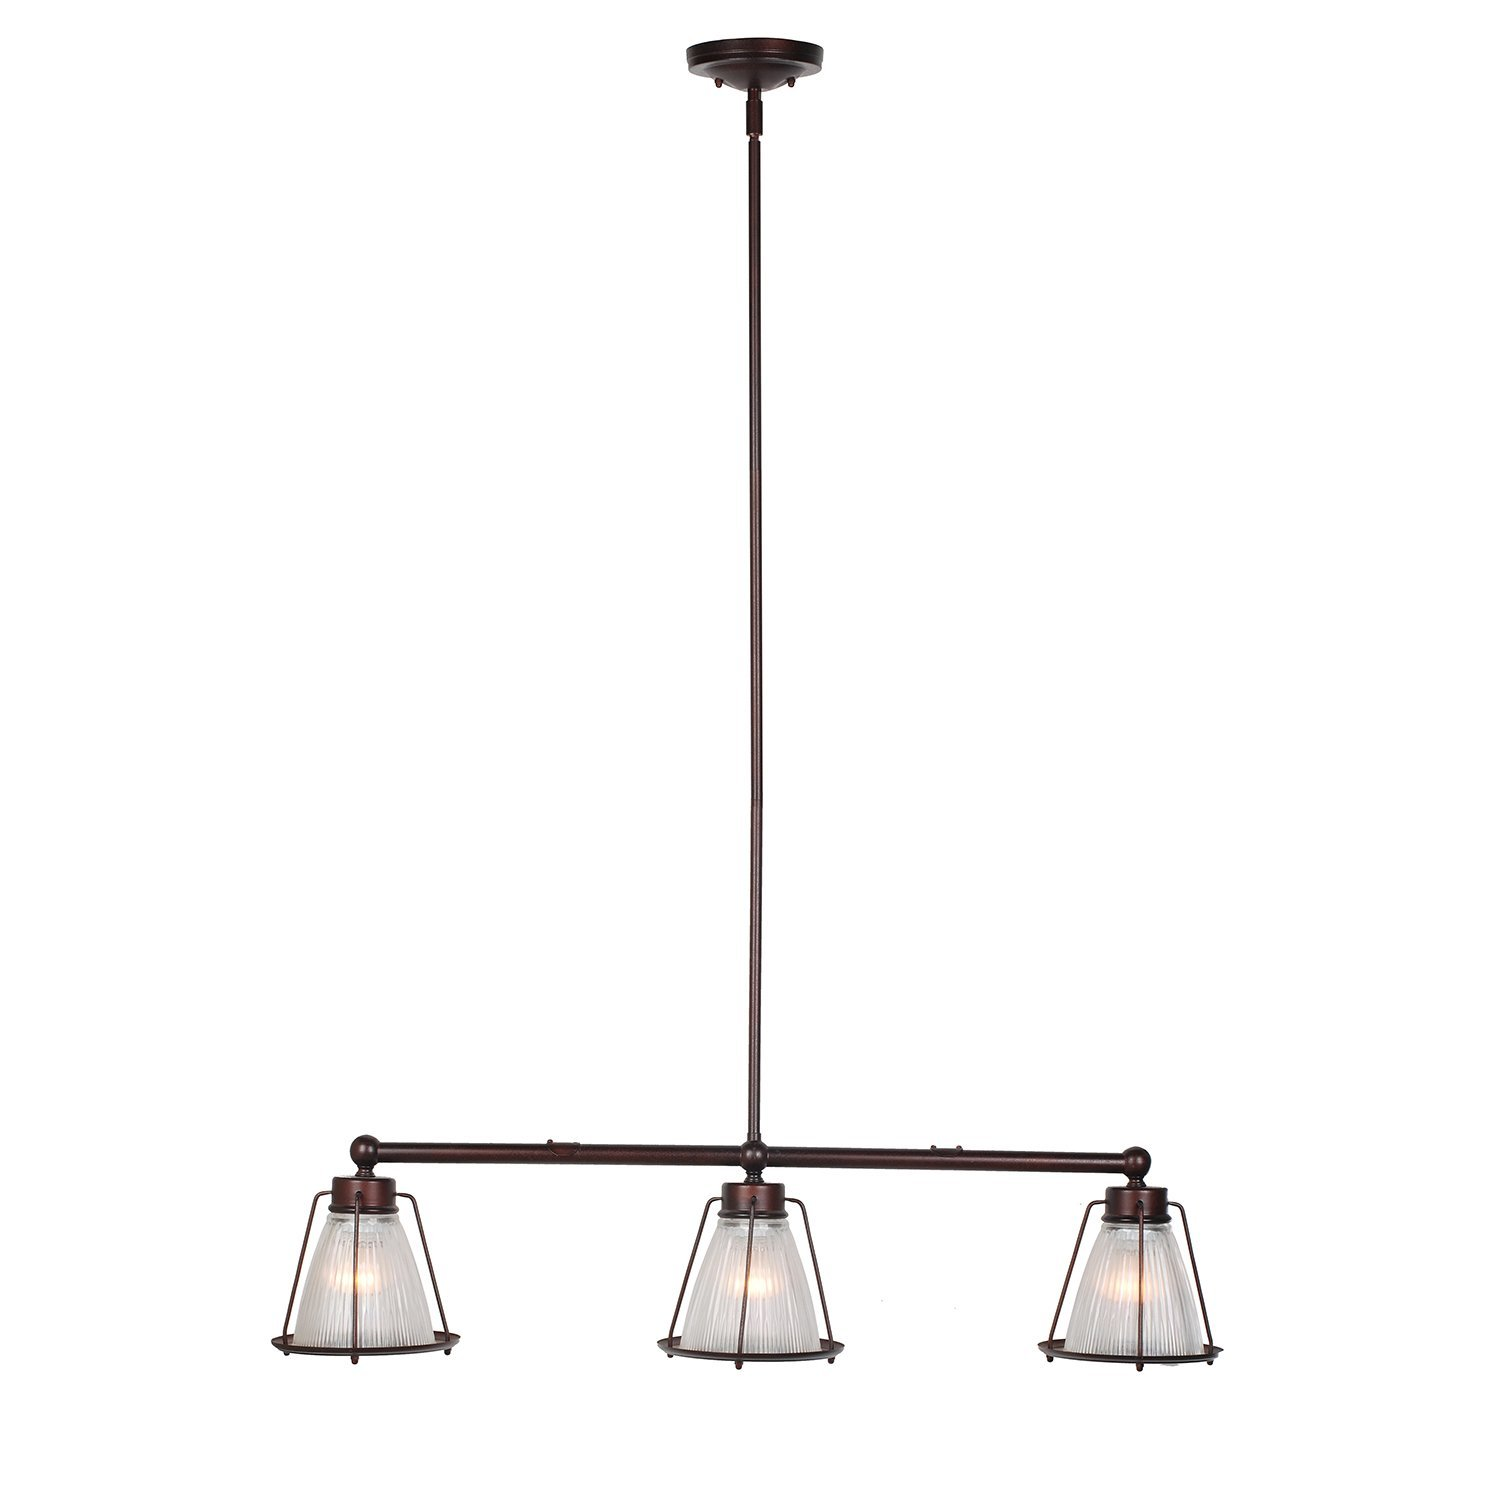 Design House Essex 3-Light Pendant, Coffee Bronze Finish - 519793